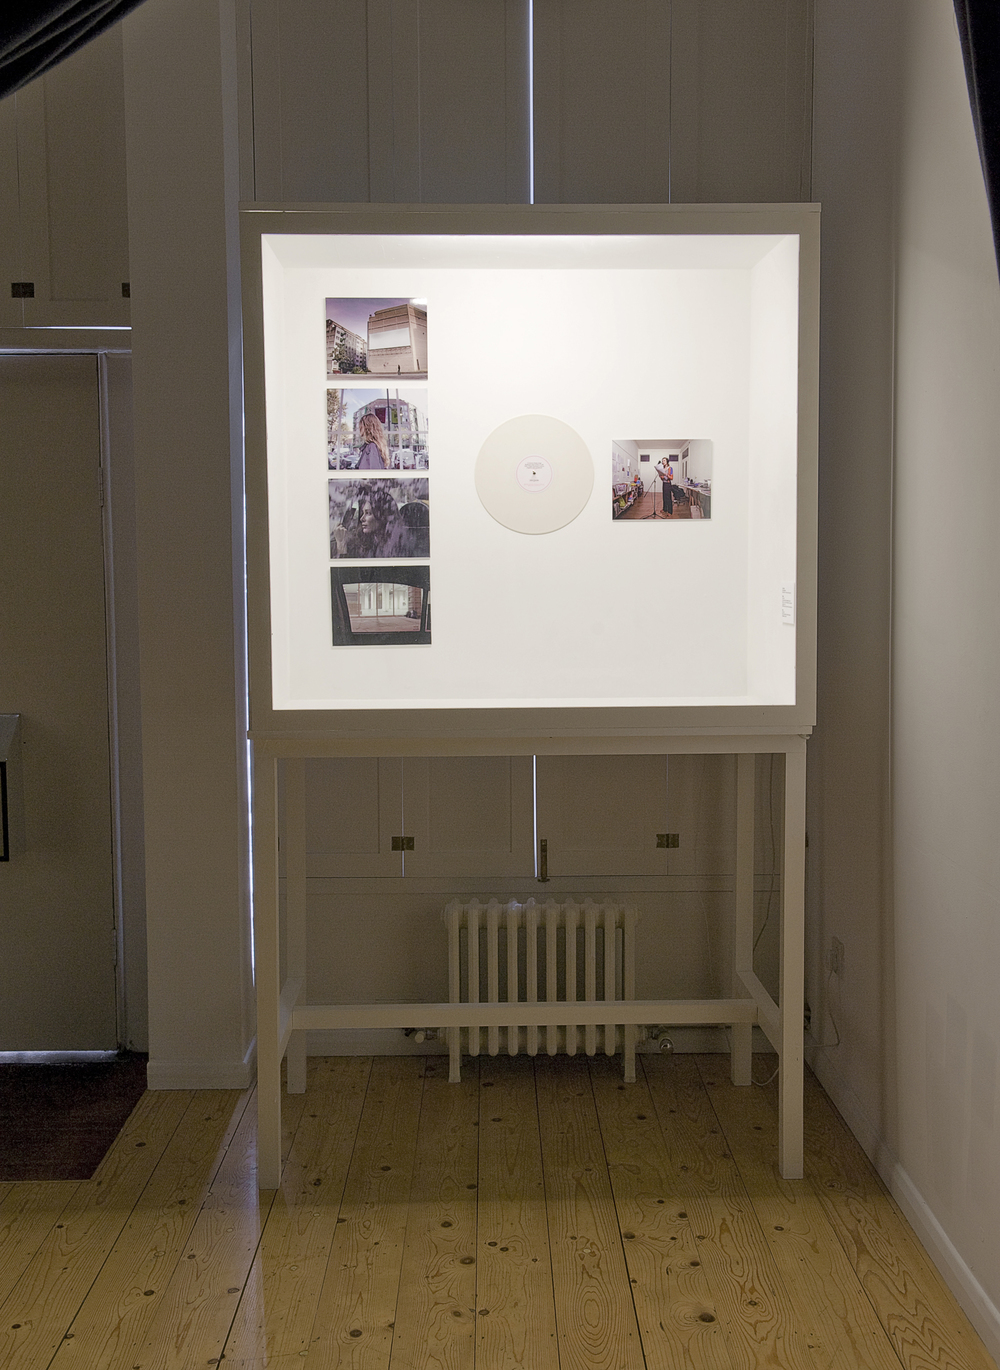 Cabinet 2 showing Joao Onofre and Stefan Bruggeman